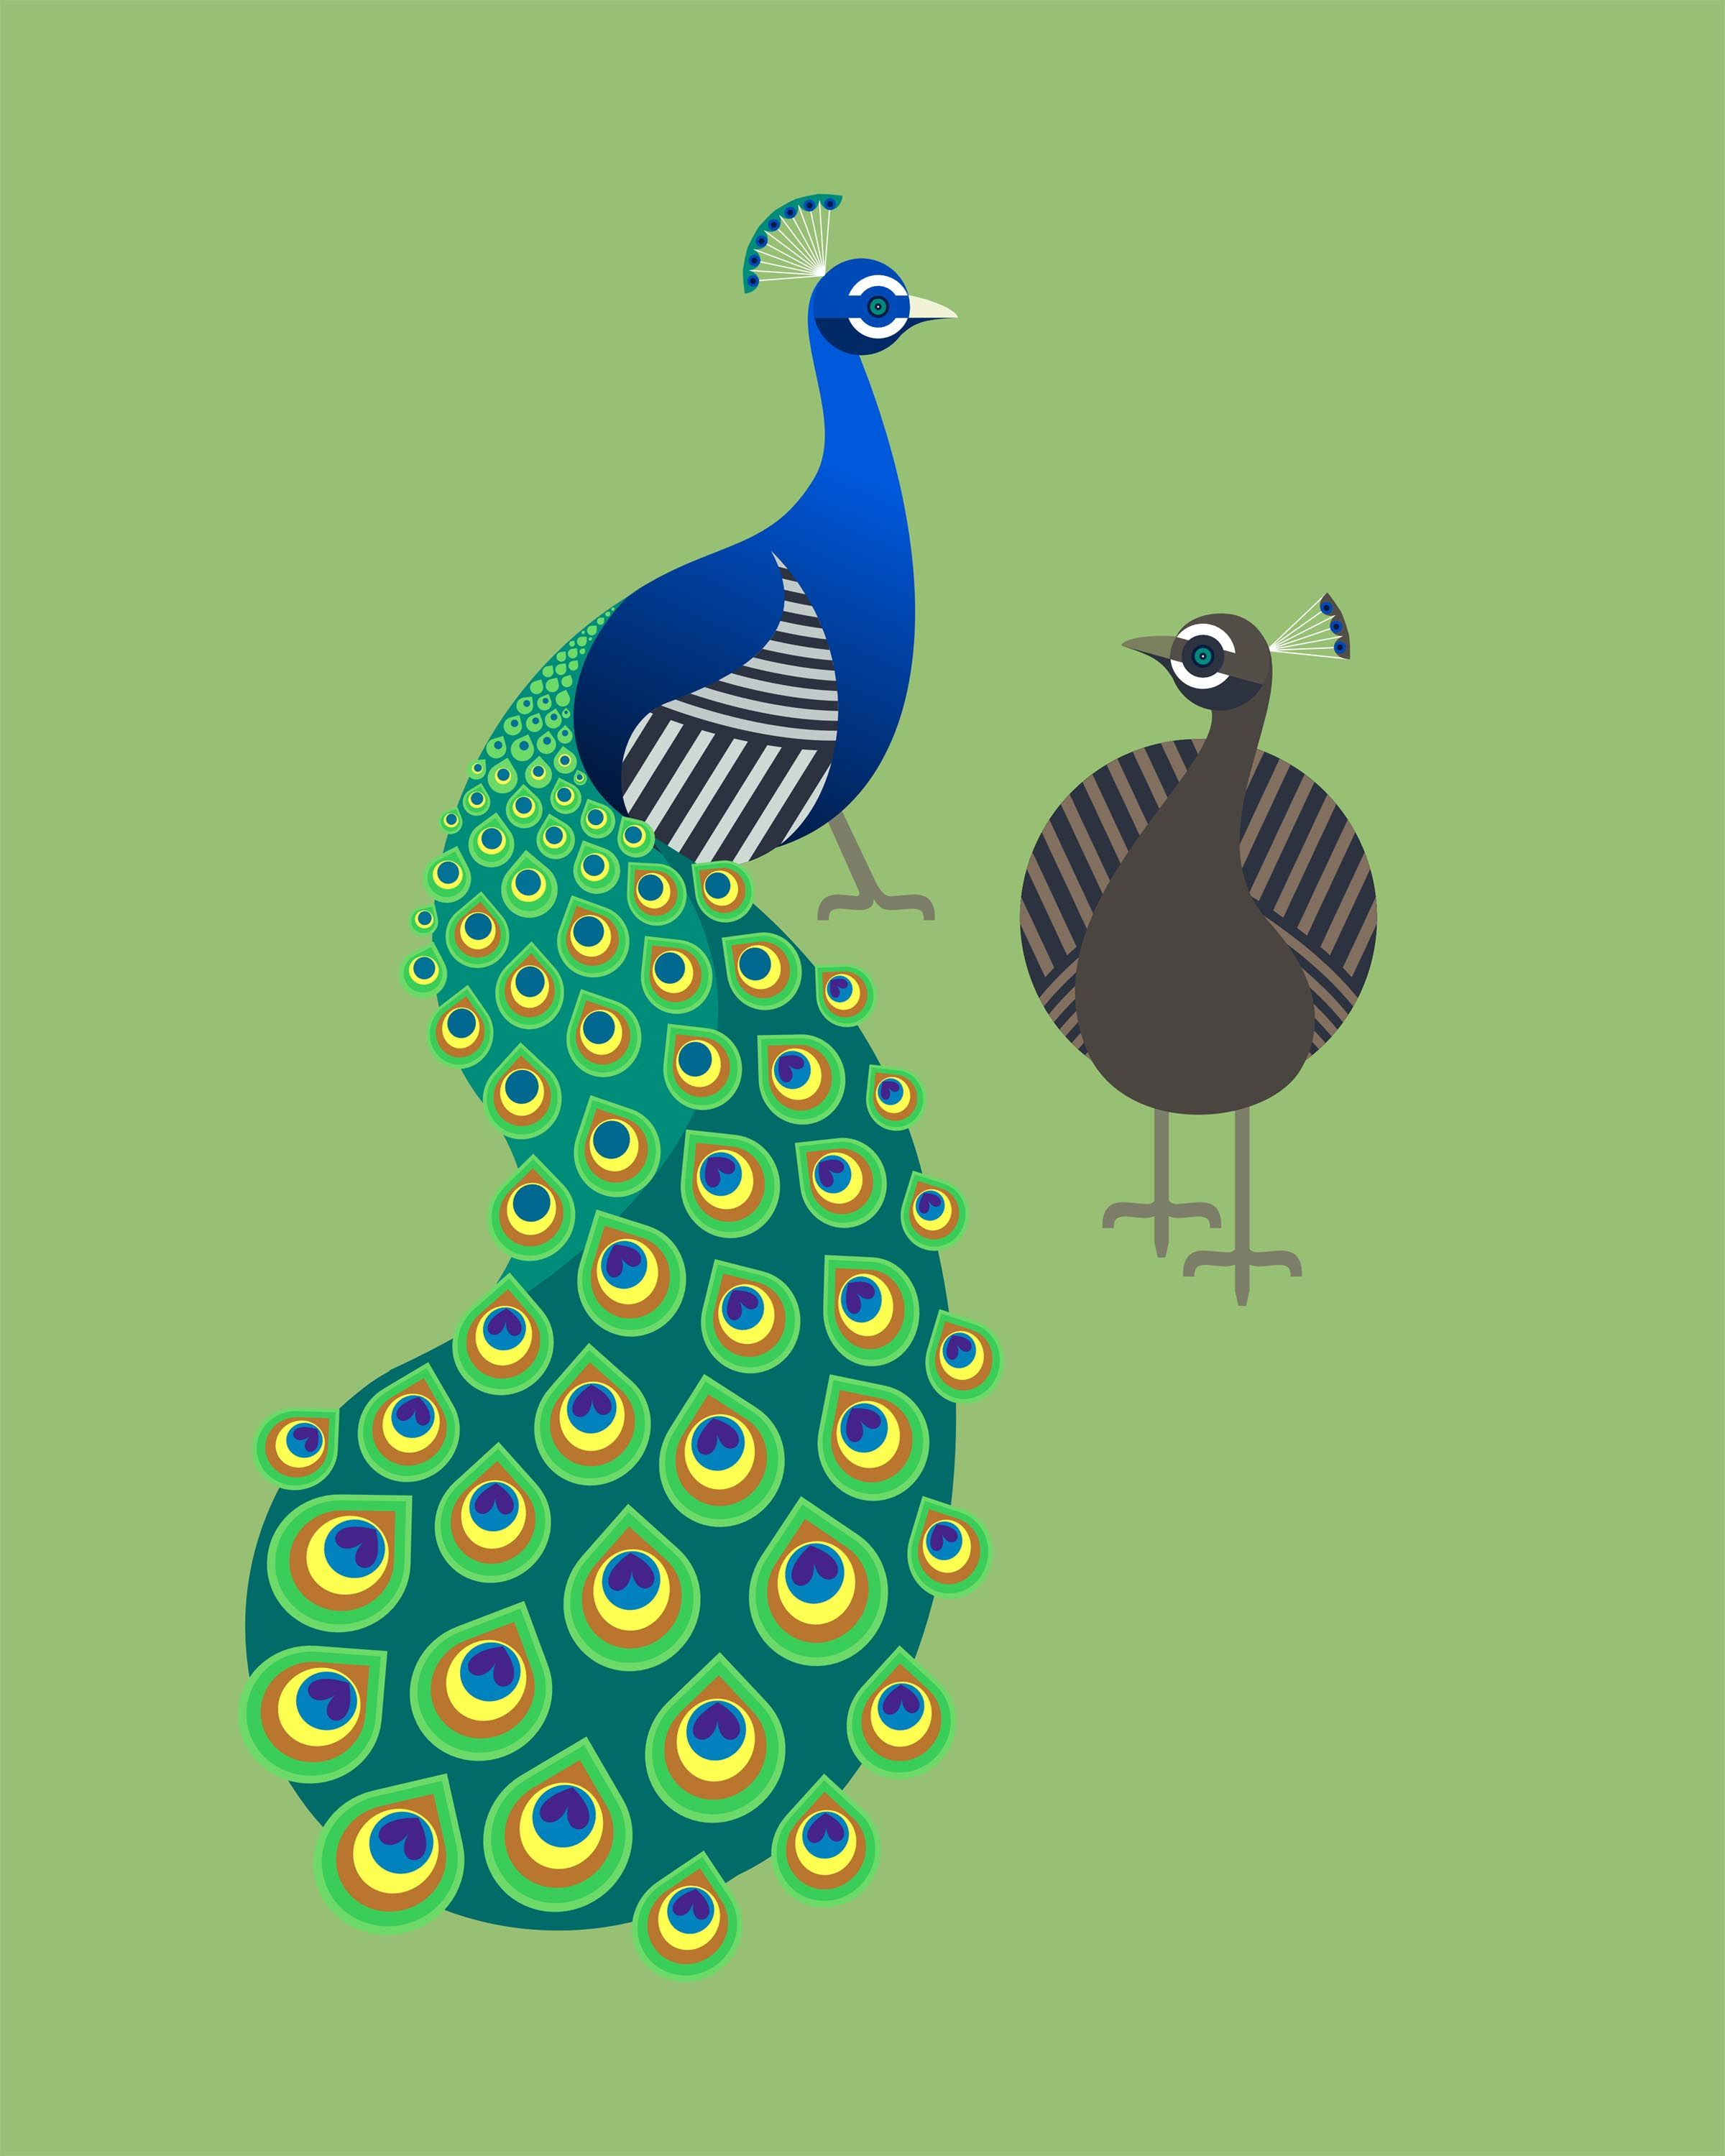 peacock and peahen by scott partridge peacock